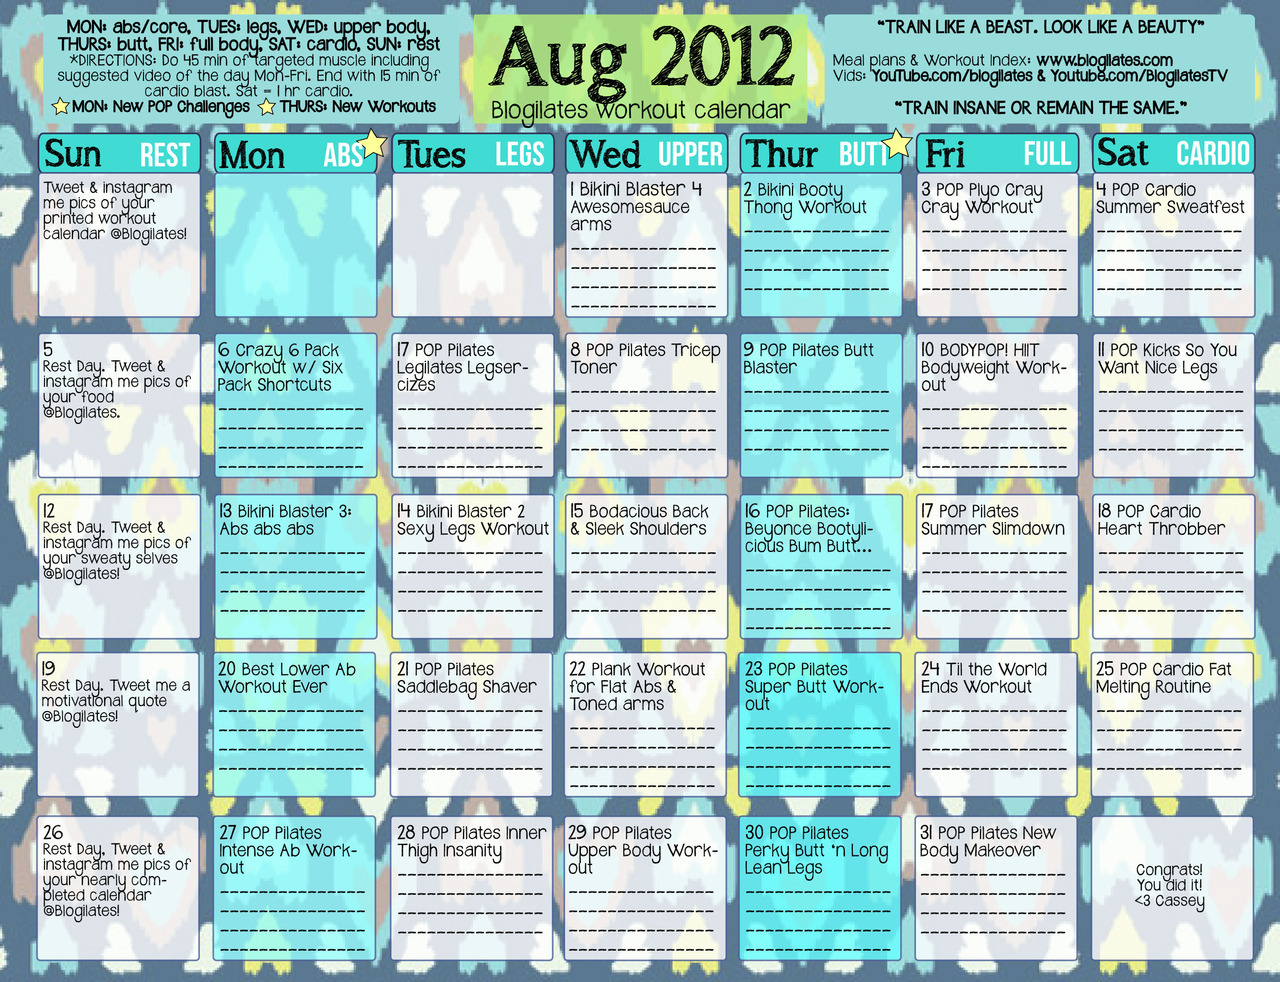 Hey POPsters. Here is the August 2012 workout calendar. Please print this, fill it out, and hang on your wall. The challenge this month is to do every single video I suggested on your workout days. Check the instructions in the top left hand corner for how much cardio to do etc on certain days. Good luck! Have fun! Here's to an AWESOME AUGUST ahead of us!!! <3 Cassey ps - sign up for my newsletter to ensure you get updates on new videos and new challenges. click here.